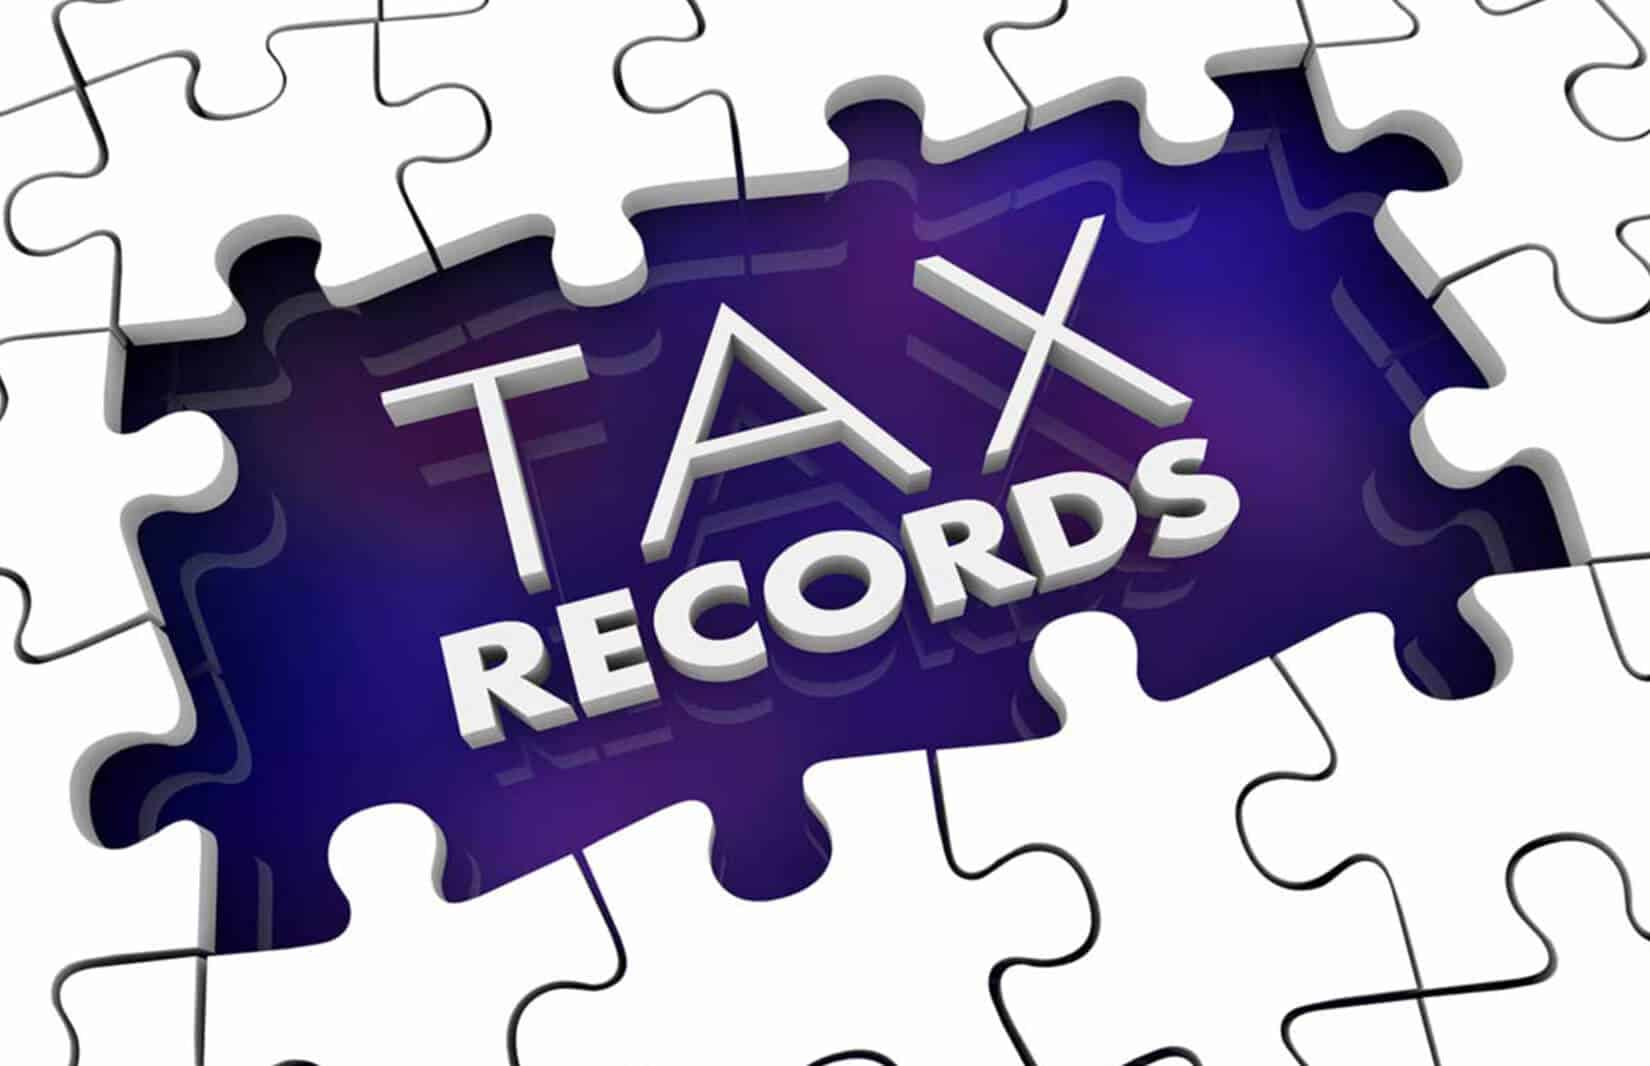 Discarding Tax Records